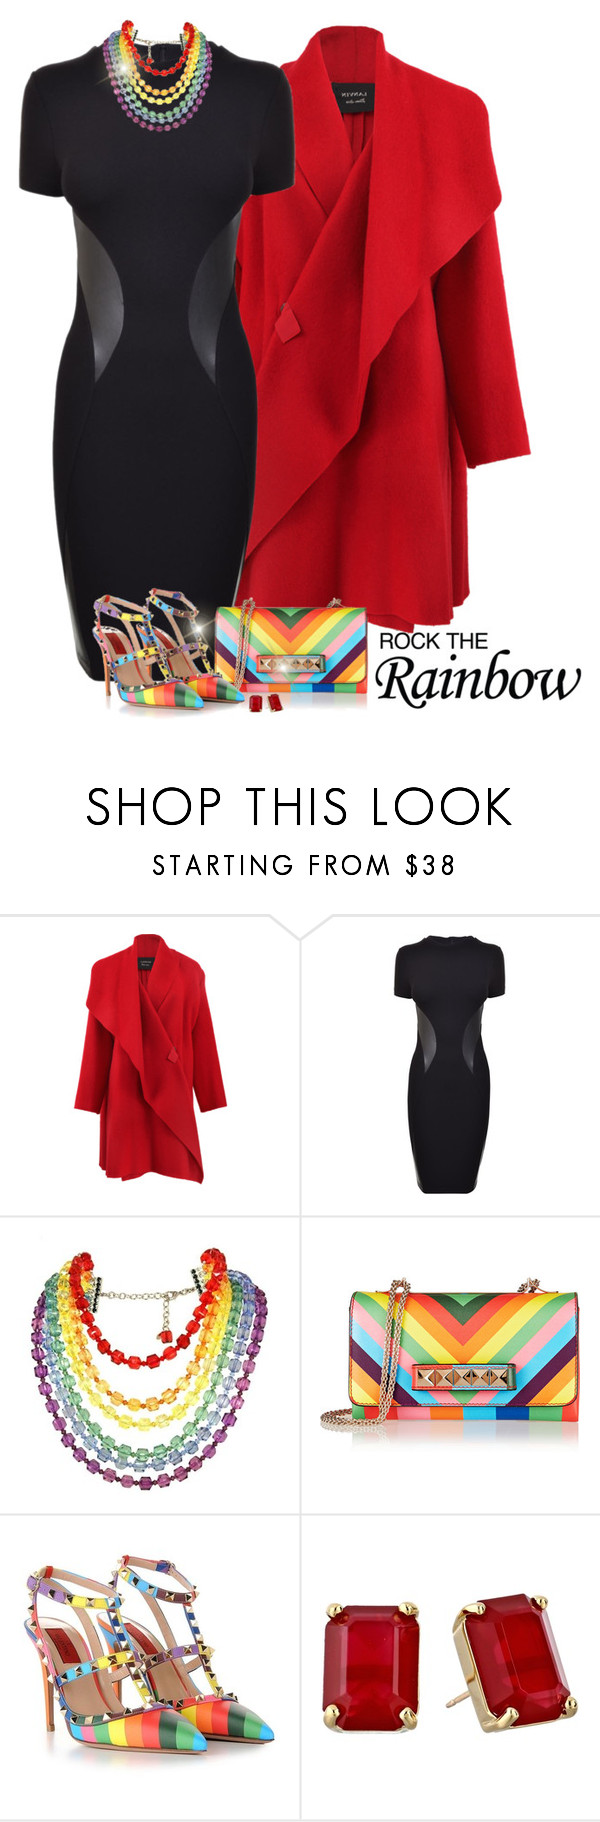 """""""Rainbow Style"""" by signaturenails-dstanley ❤ liked on Polyvore featuring Lanvin, McQ by Alexander McQueen, Tarina Tarantino, Valentino, Kate Spade, women's clothing, women's fashion, women, female and woman"""